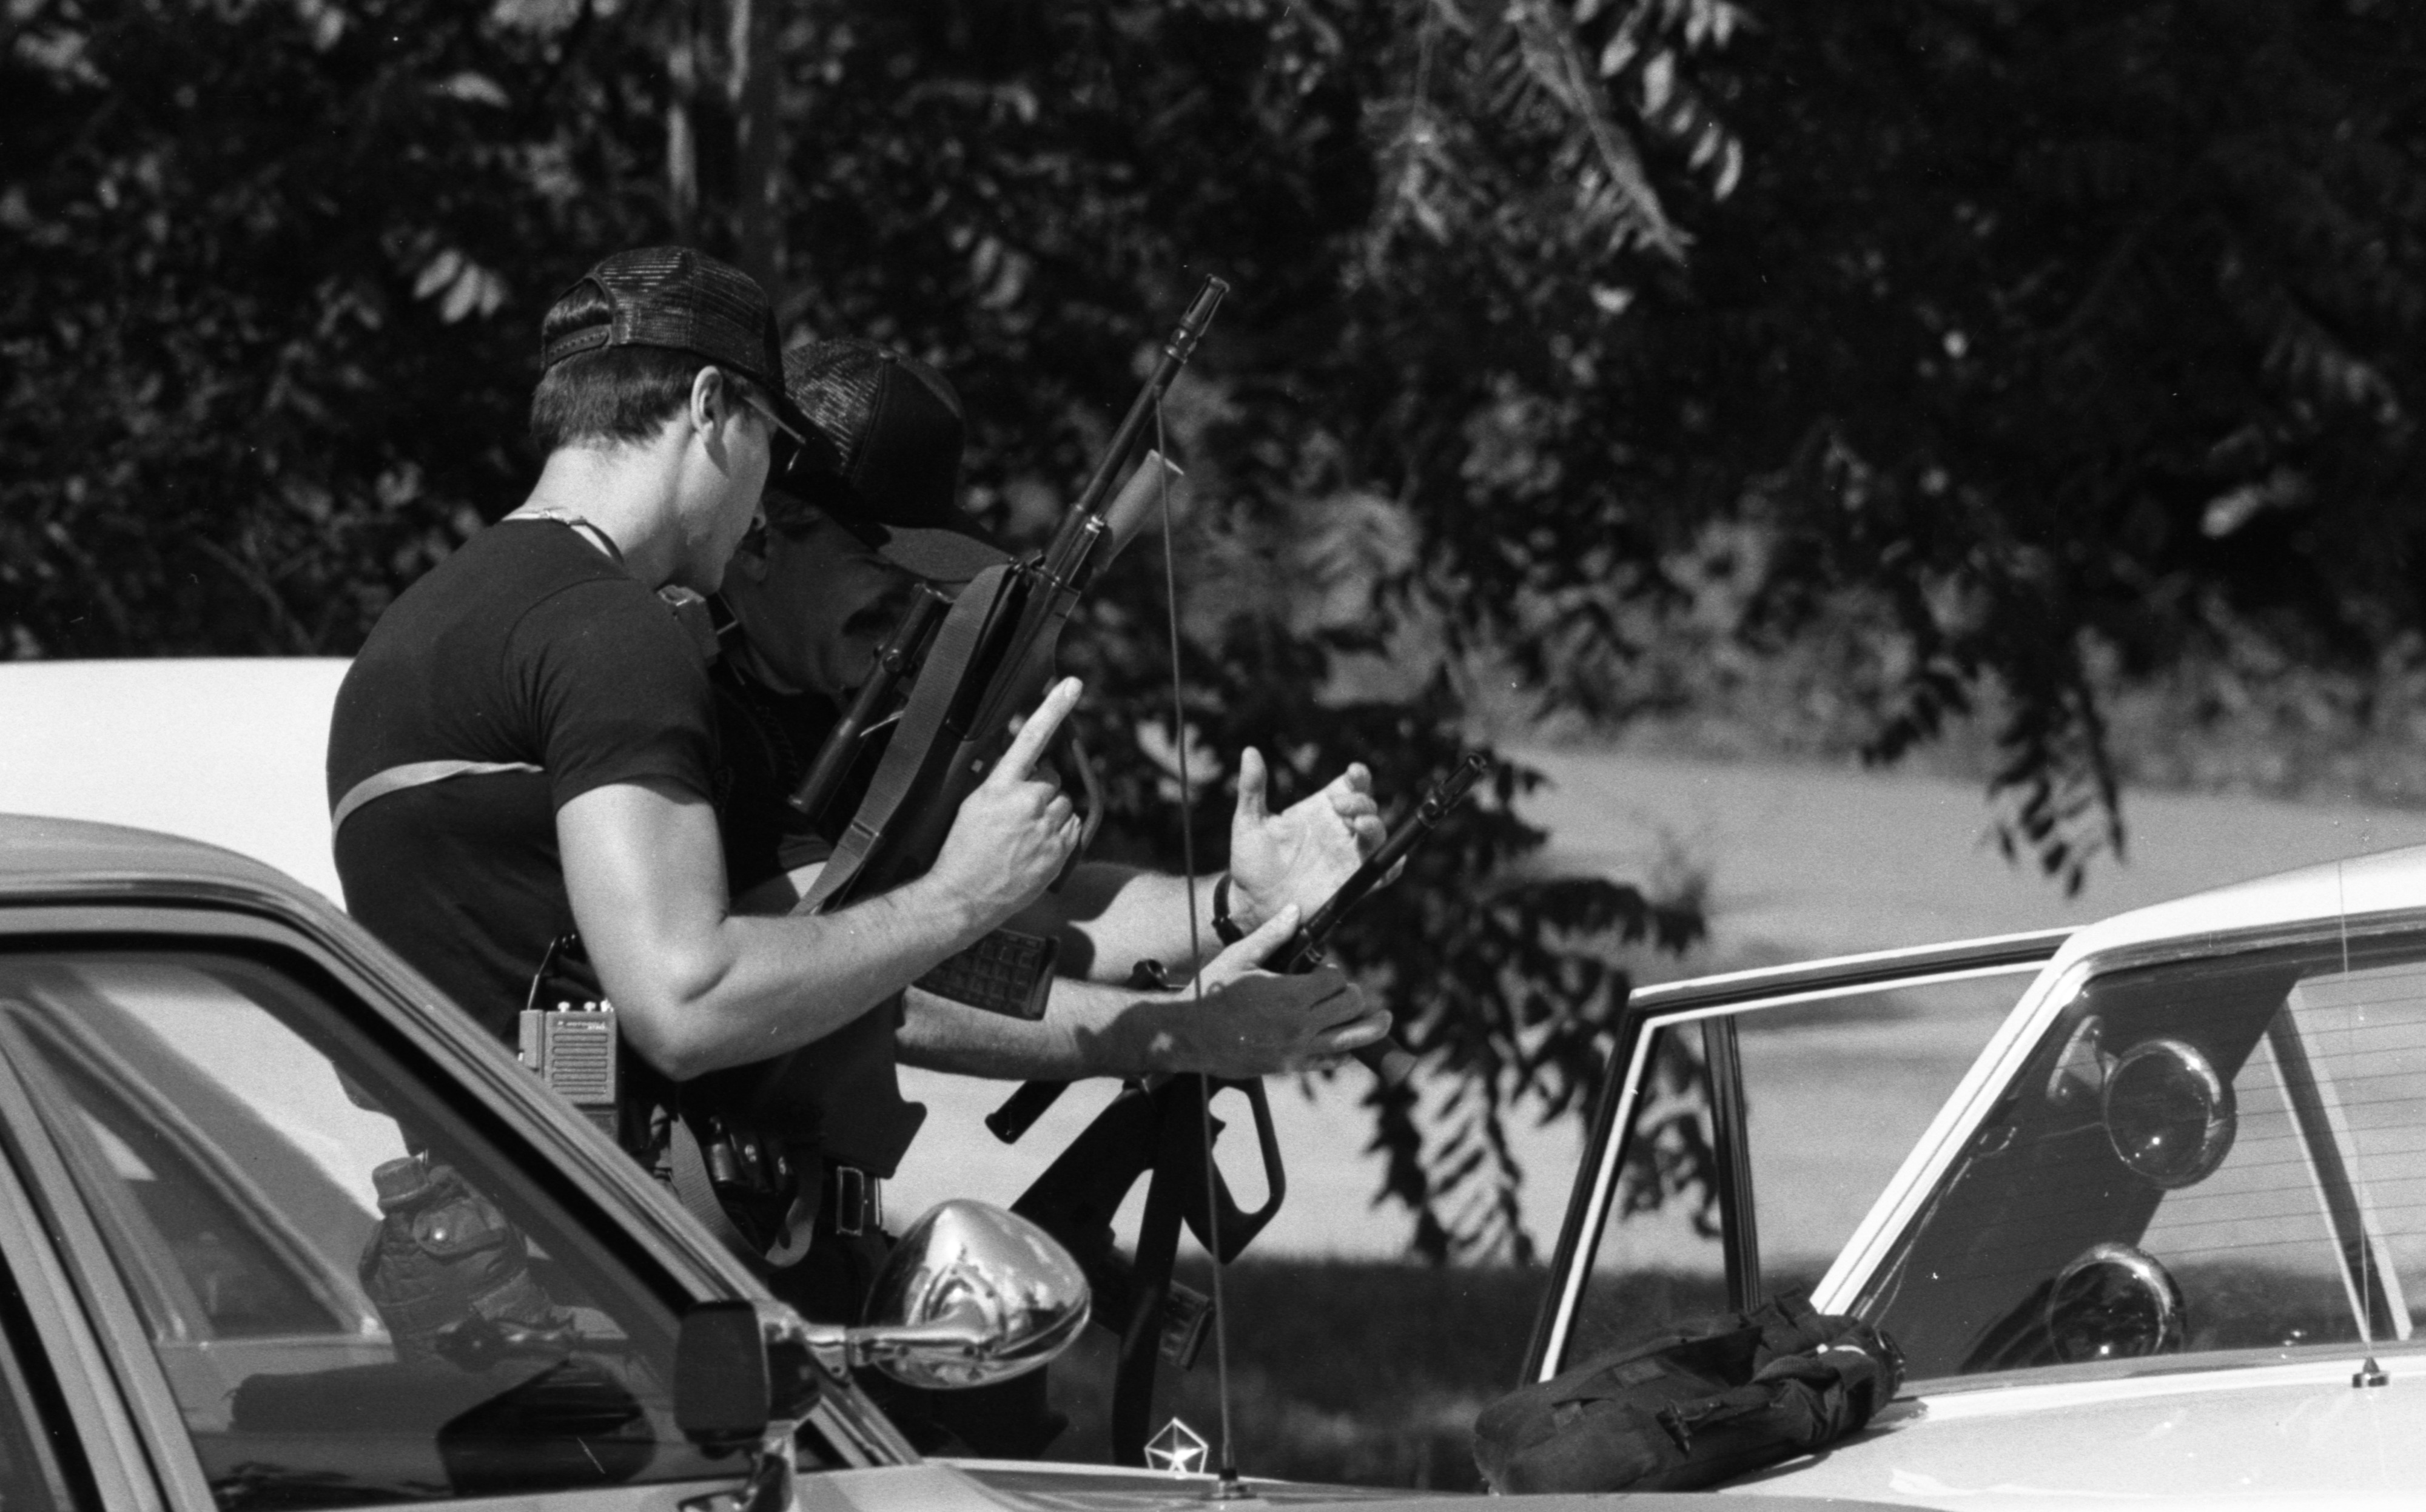 Ann Arbor Police Special Tactical Unit Responds To Barricaded Gunman, July 1985 image